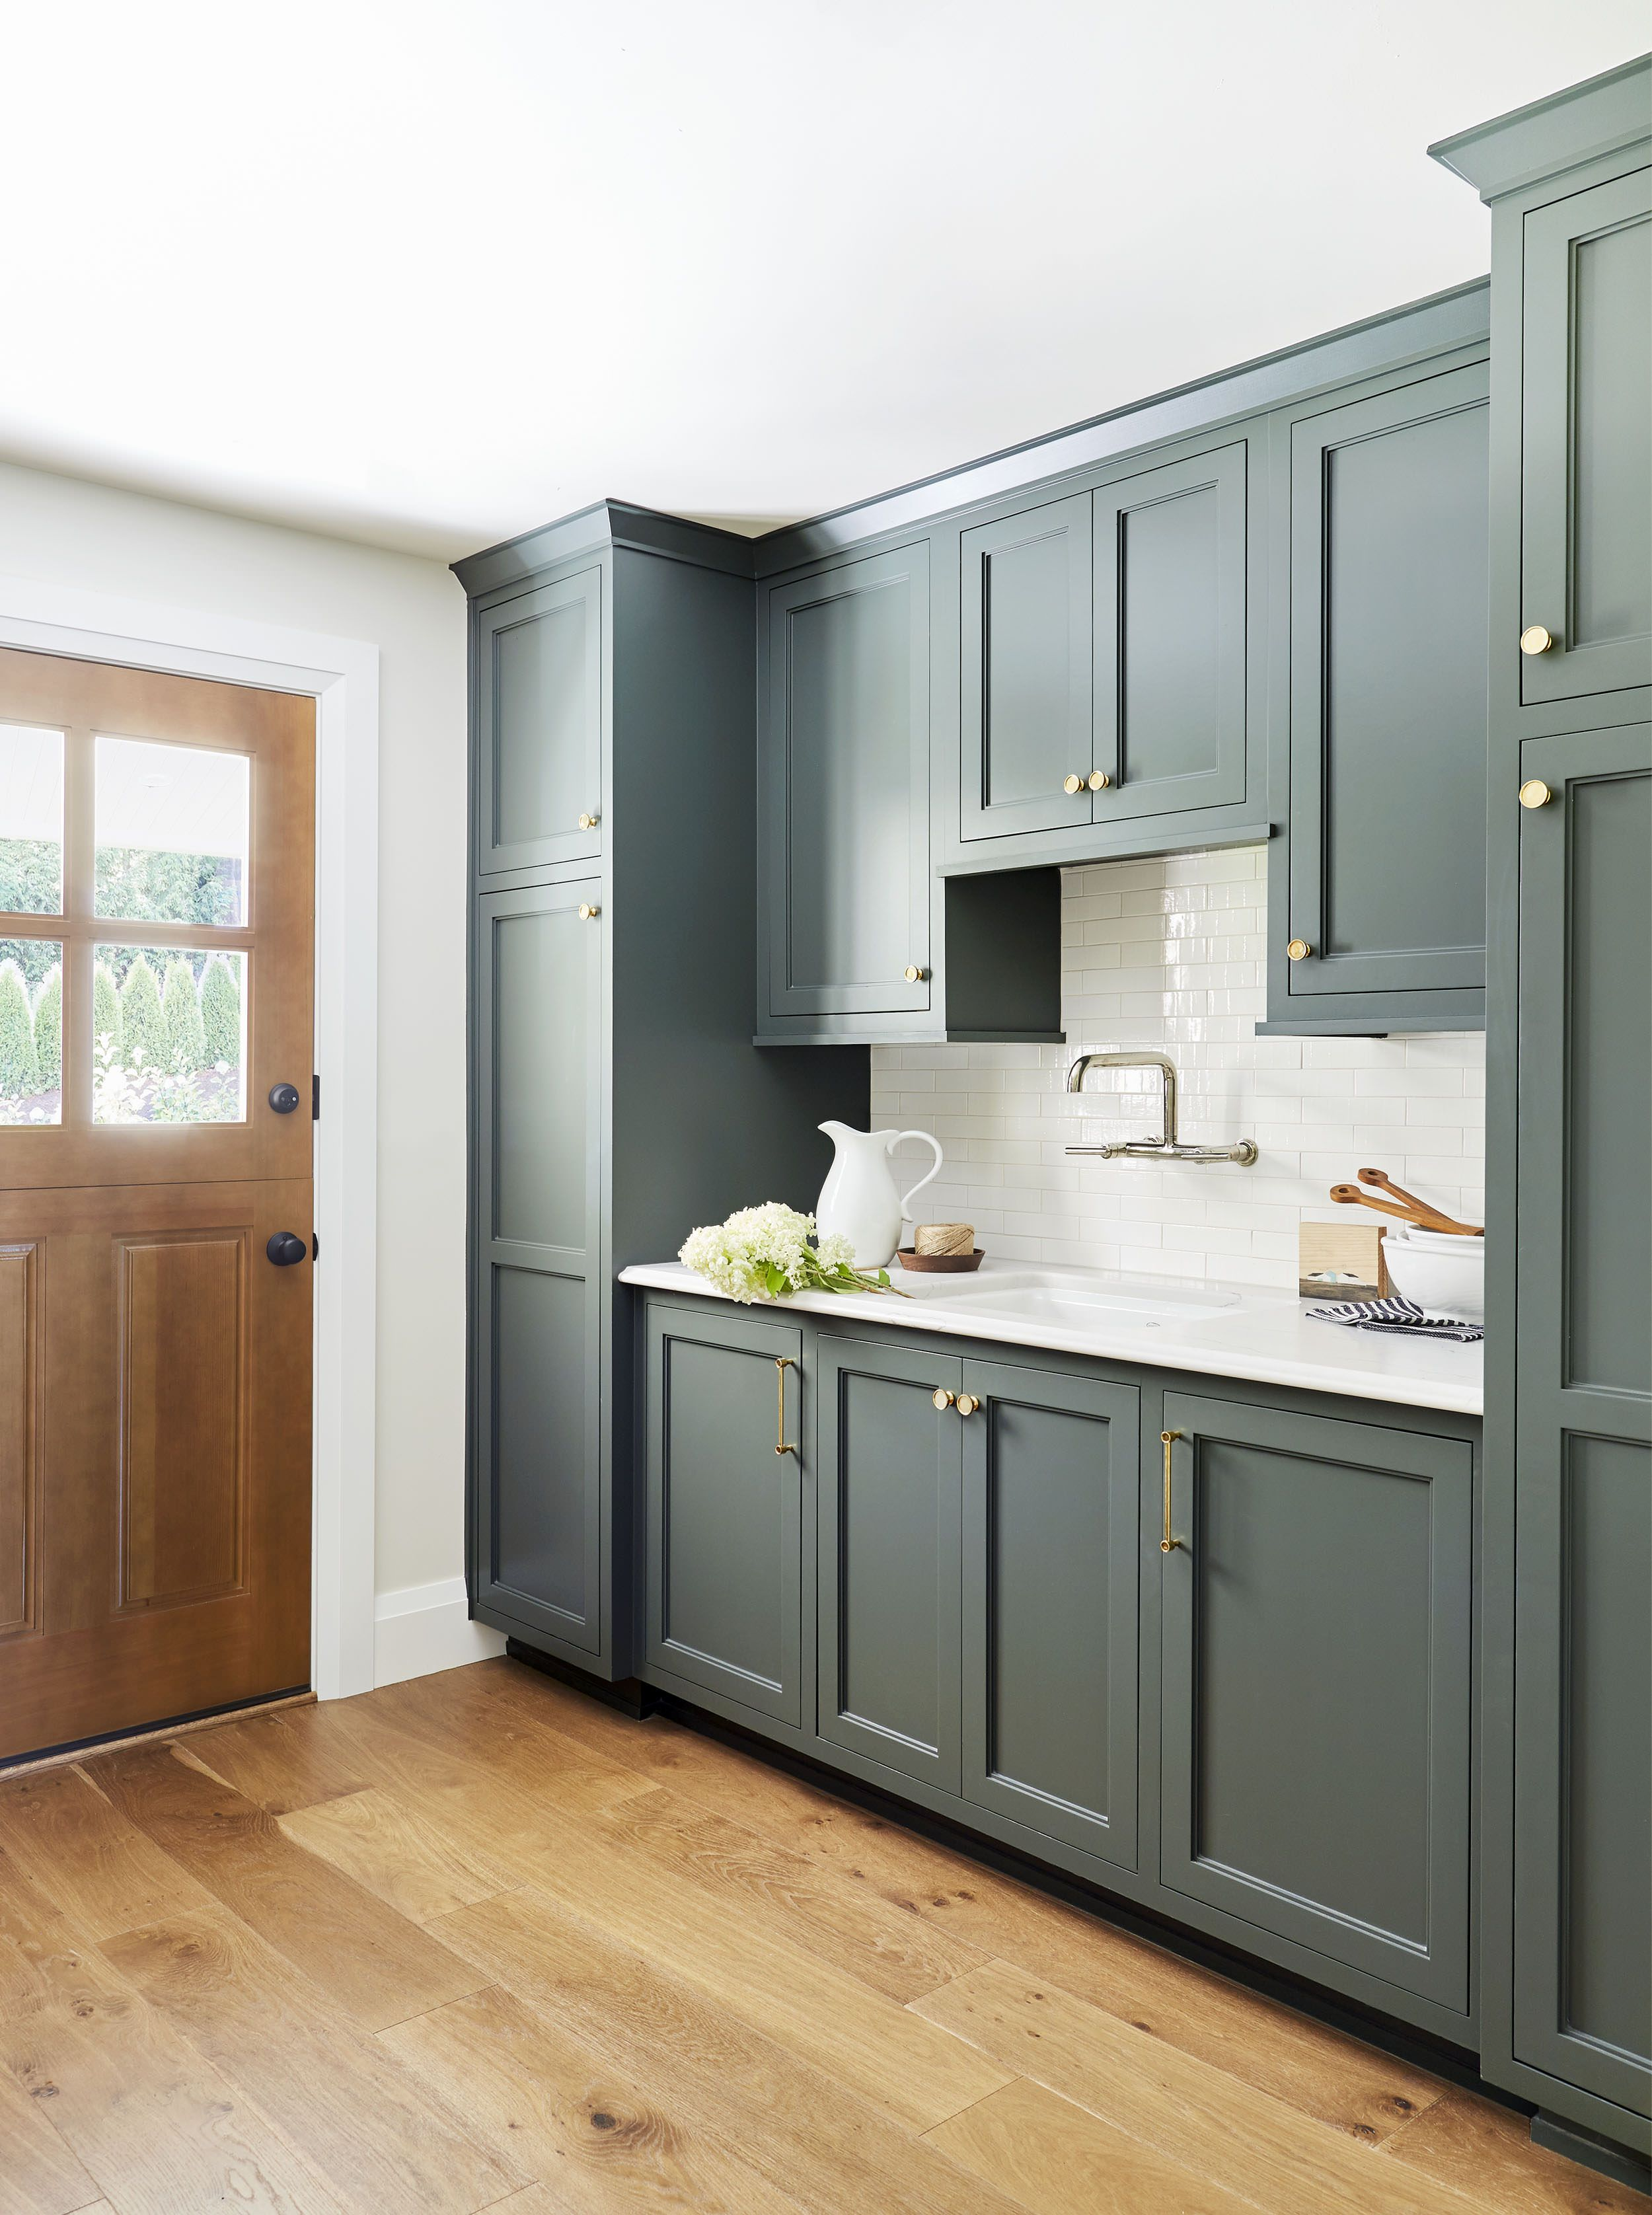 8 Steps To Building A Smart Organized Pantry Mudroom Emily Henderson Green Cabinets Mudroom Cabinets White Countertops